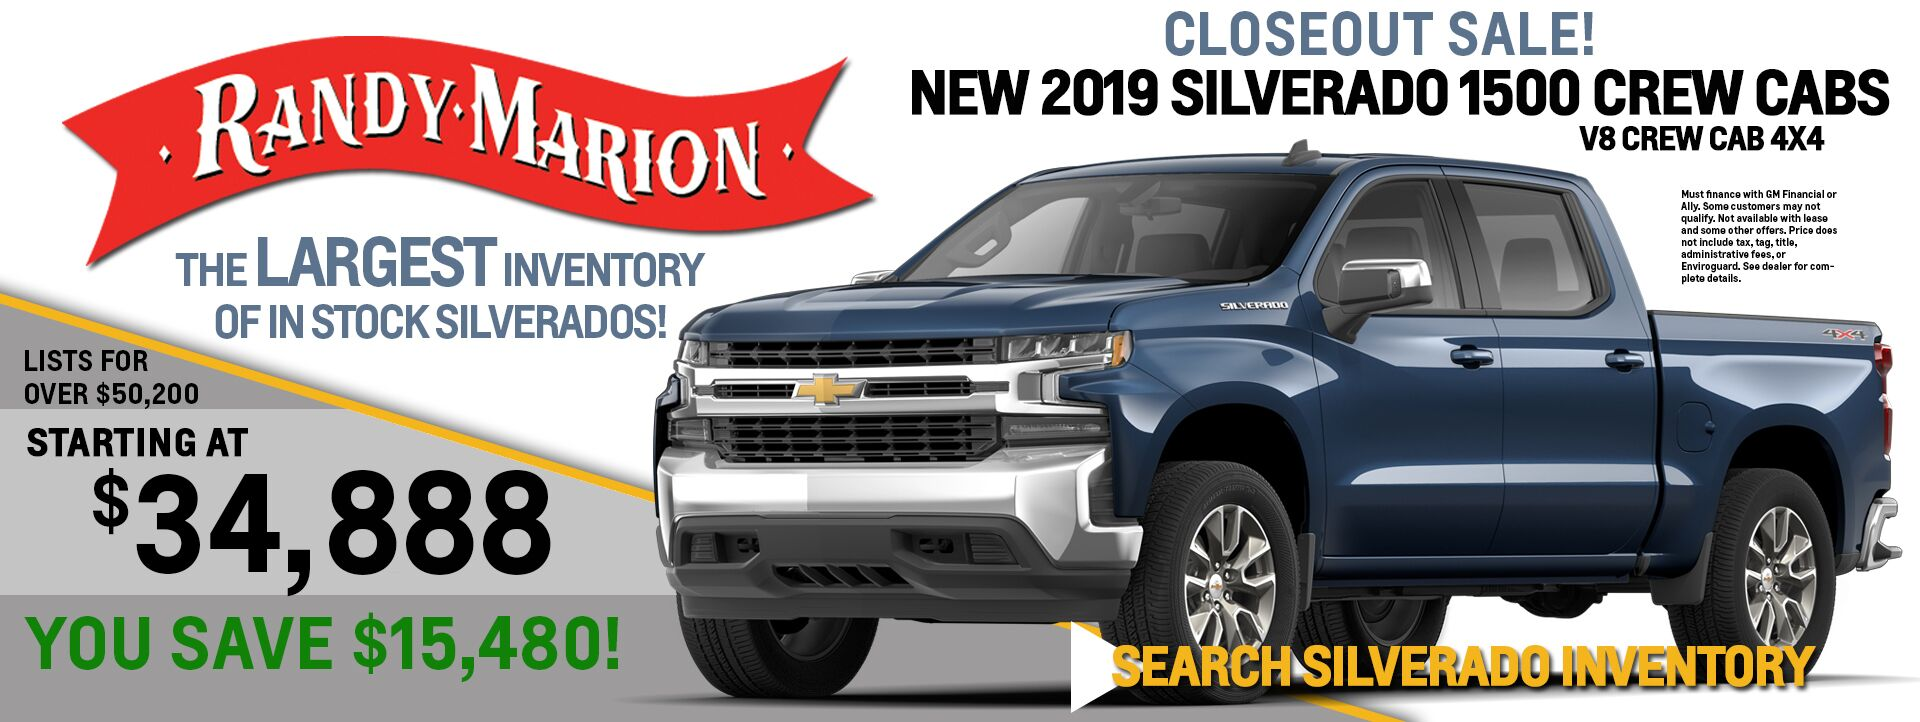 2019 Chevrolet Silverado 1500 Closeout Sale